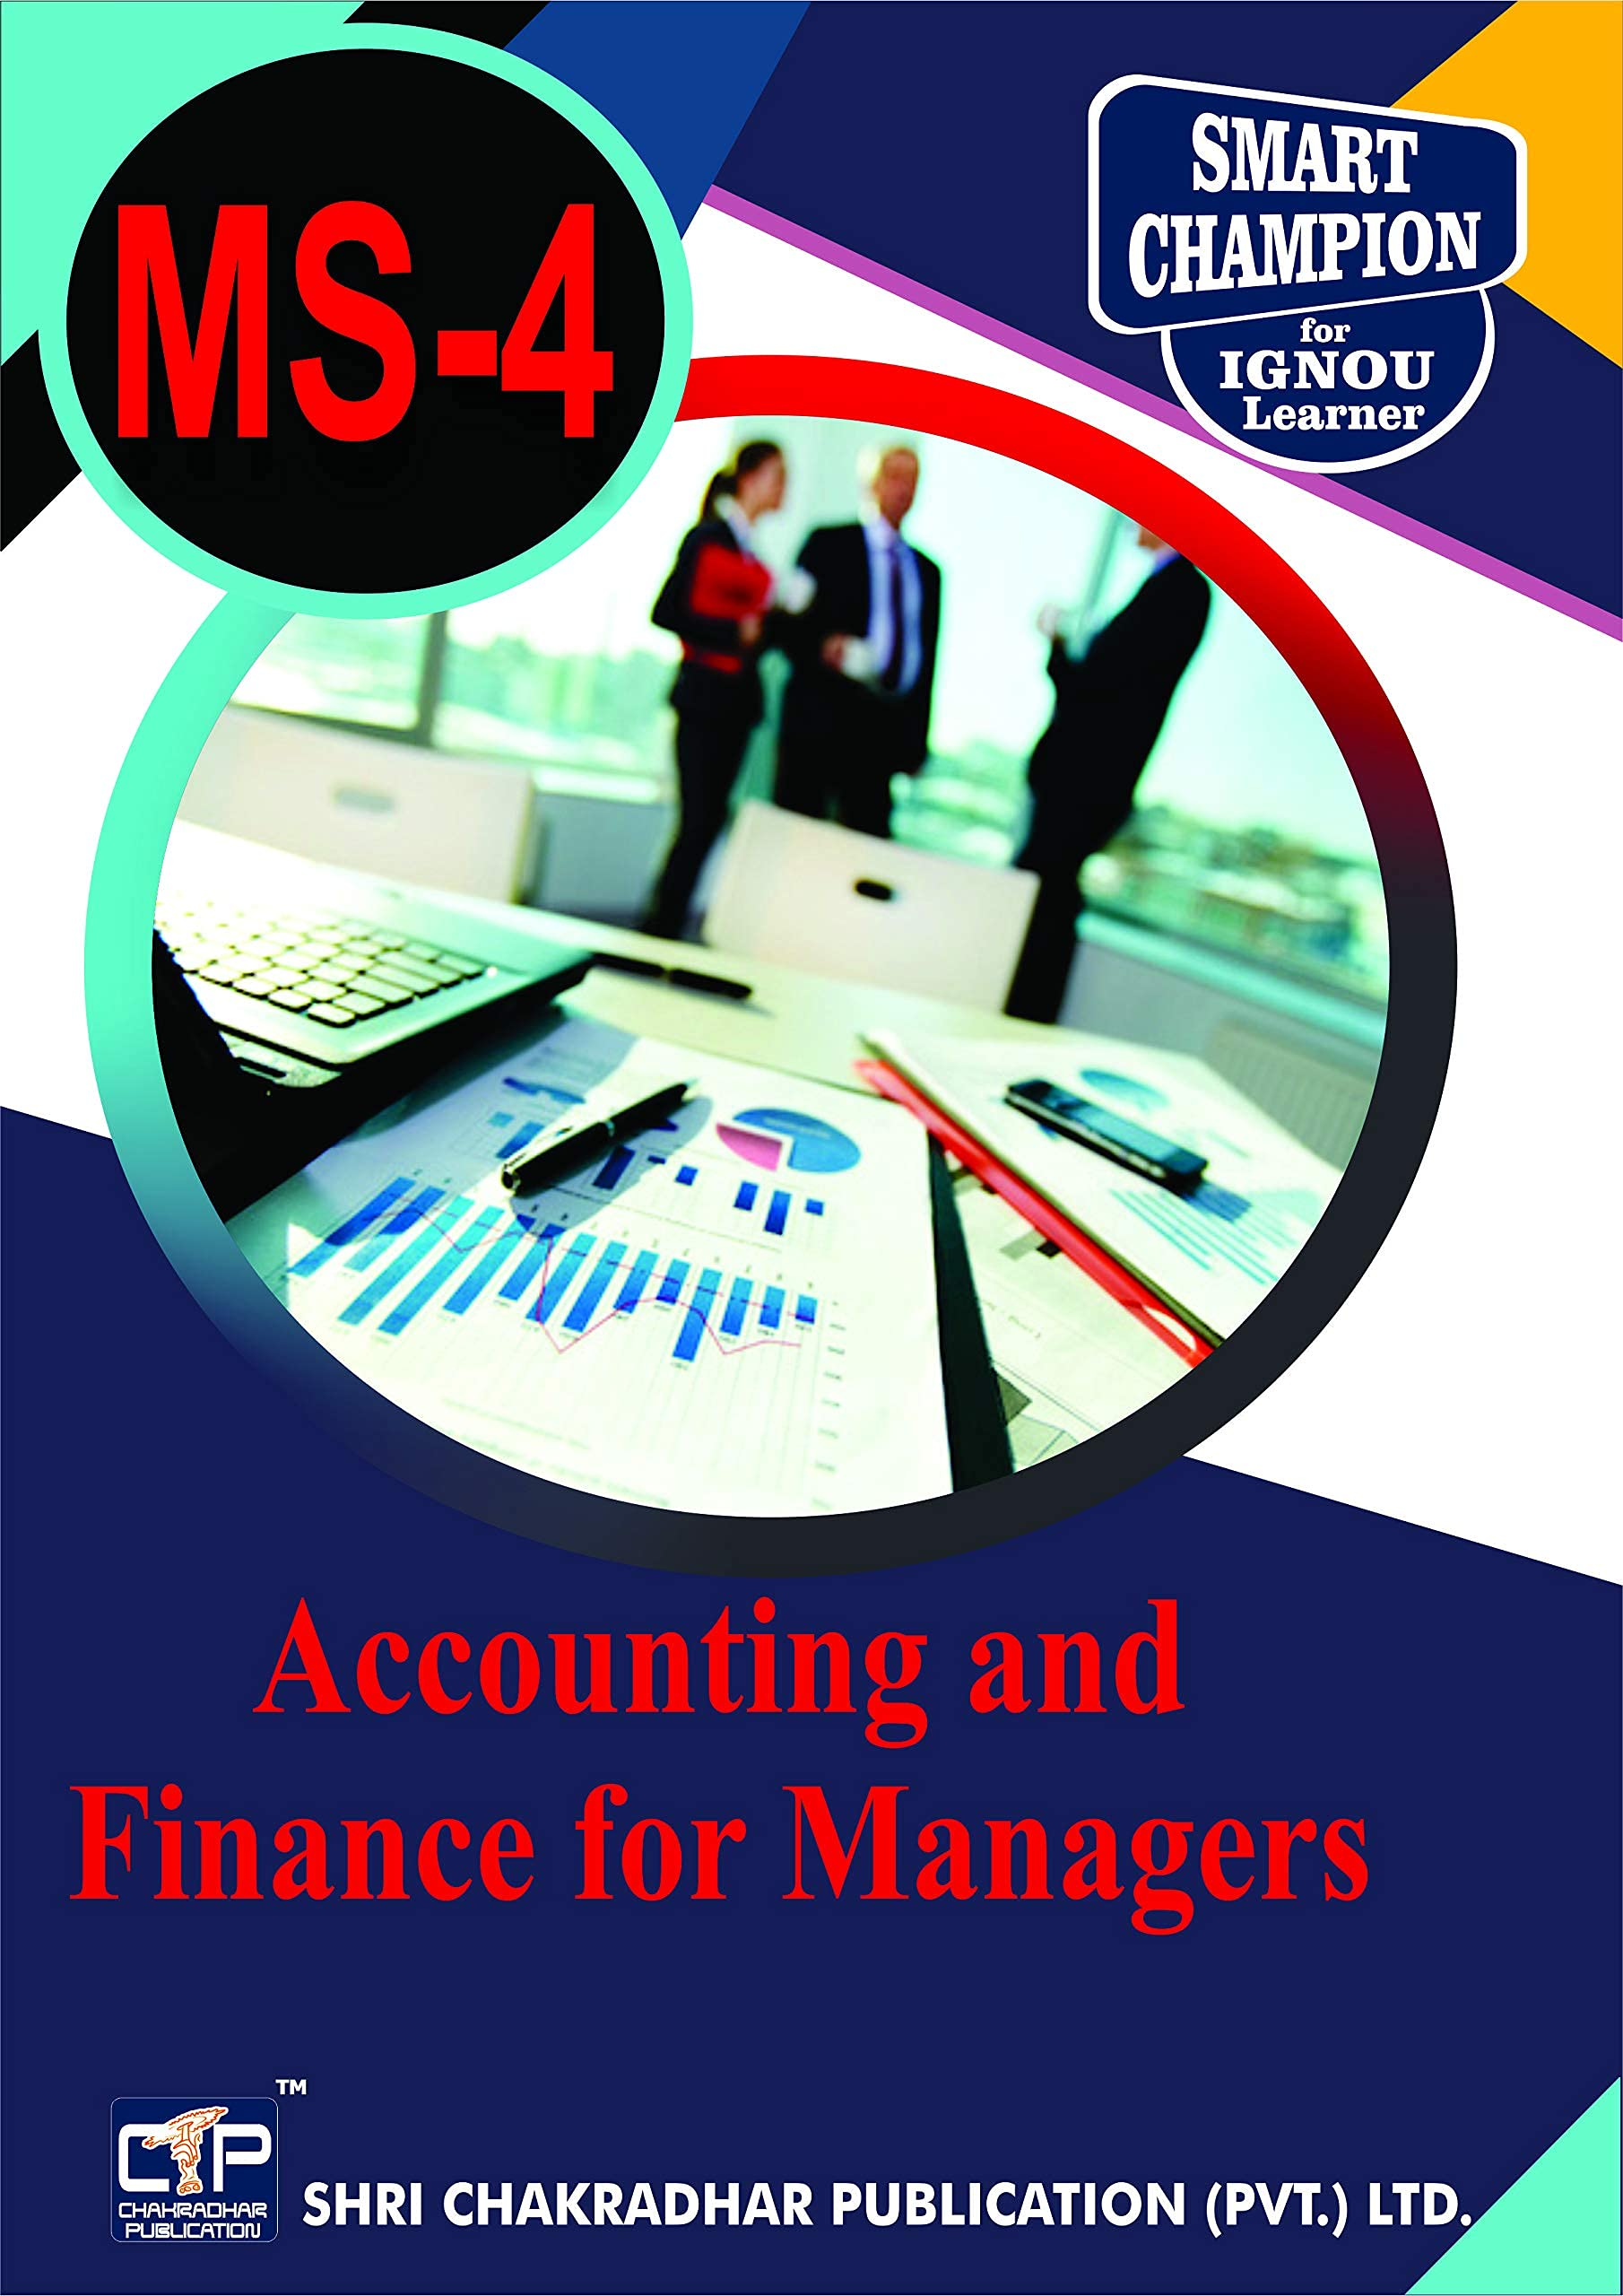 IGNOU MS 4 Help Book Accounting and Finance For Managers IGNOU Study Notes for exam Preparations with latest previous years solved papers (Latest Edition) IGNOU MBA IGNOU PGDFM IGNOU Master of Business Administration IGNOU PG Diploma in Financial Management ms-4